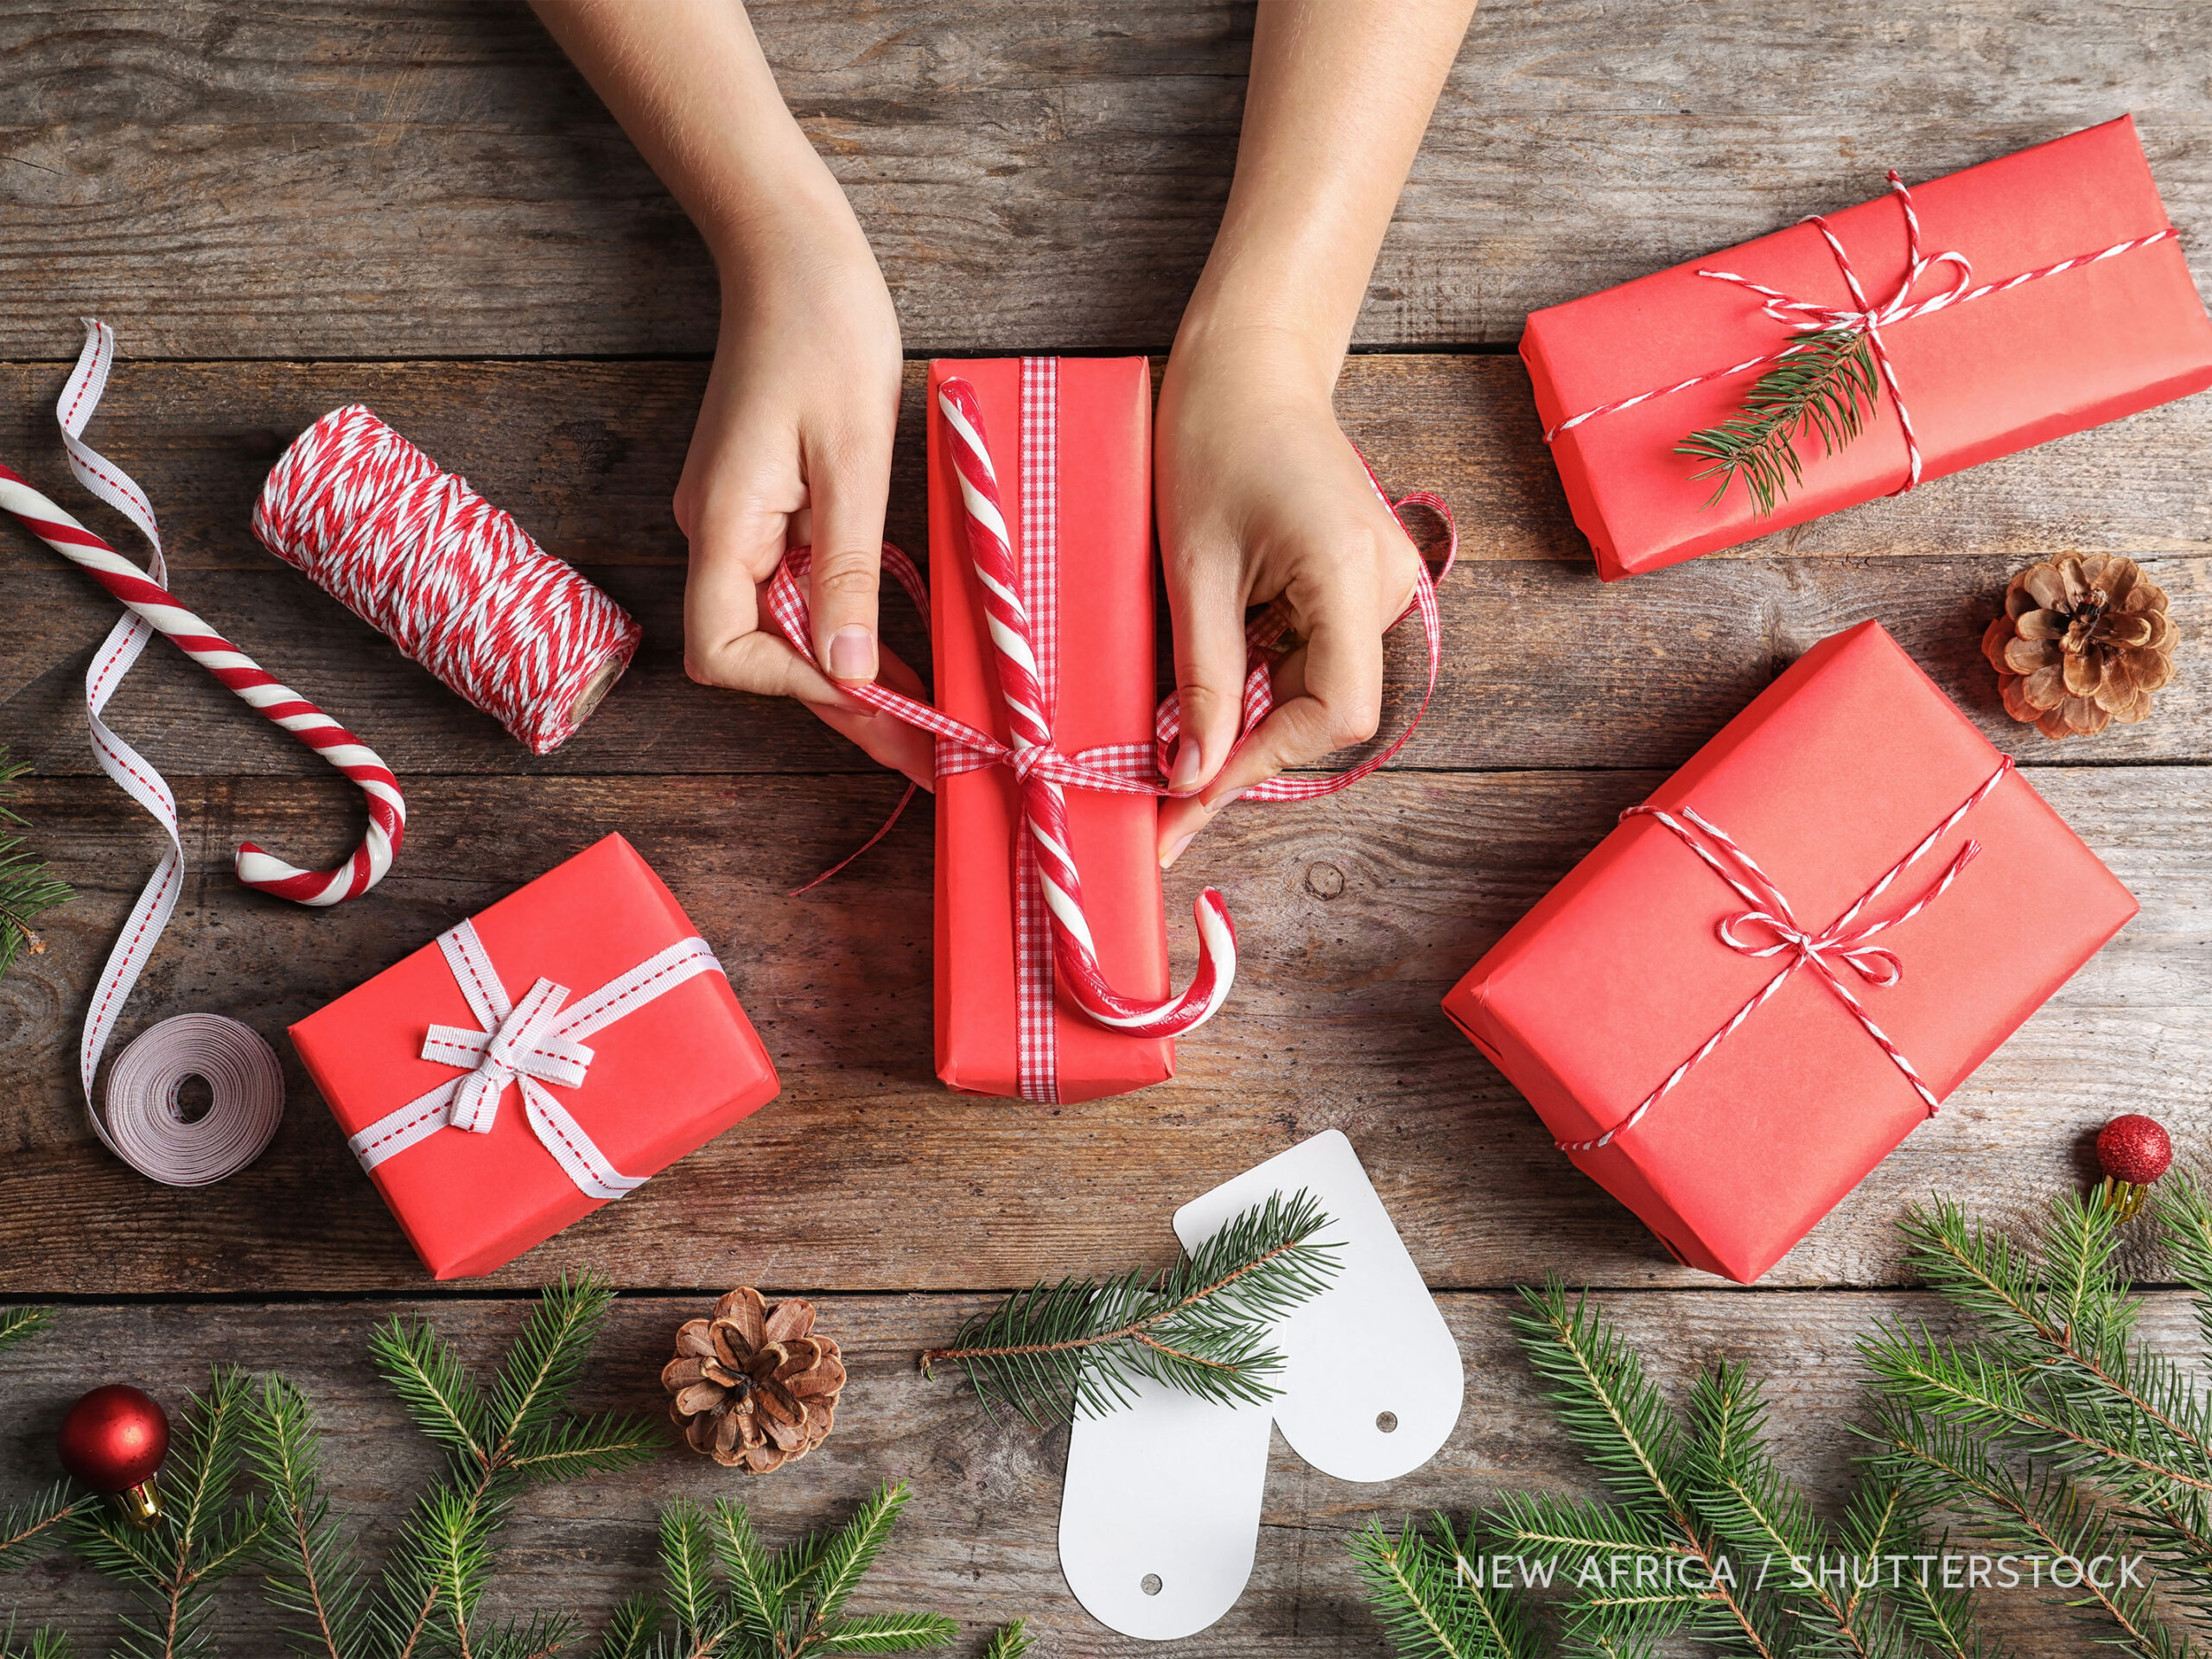 Wrapping Christmas gifts, photo